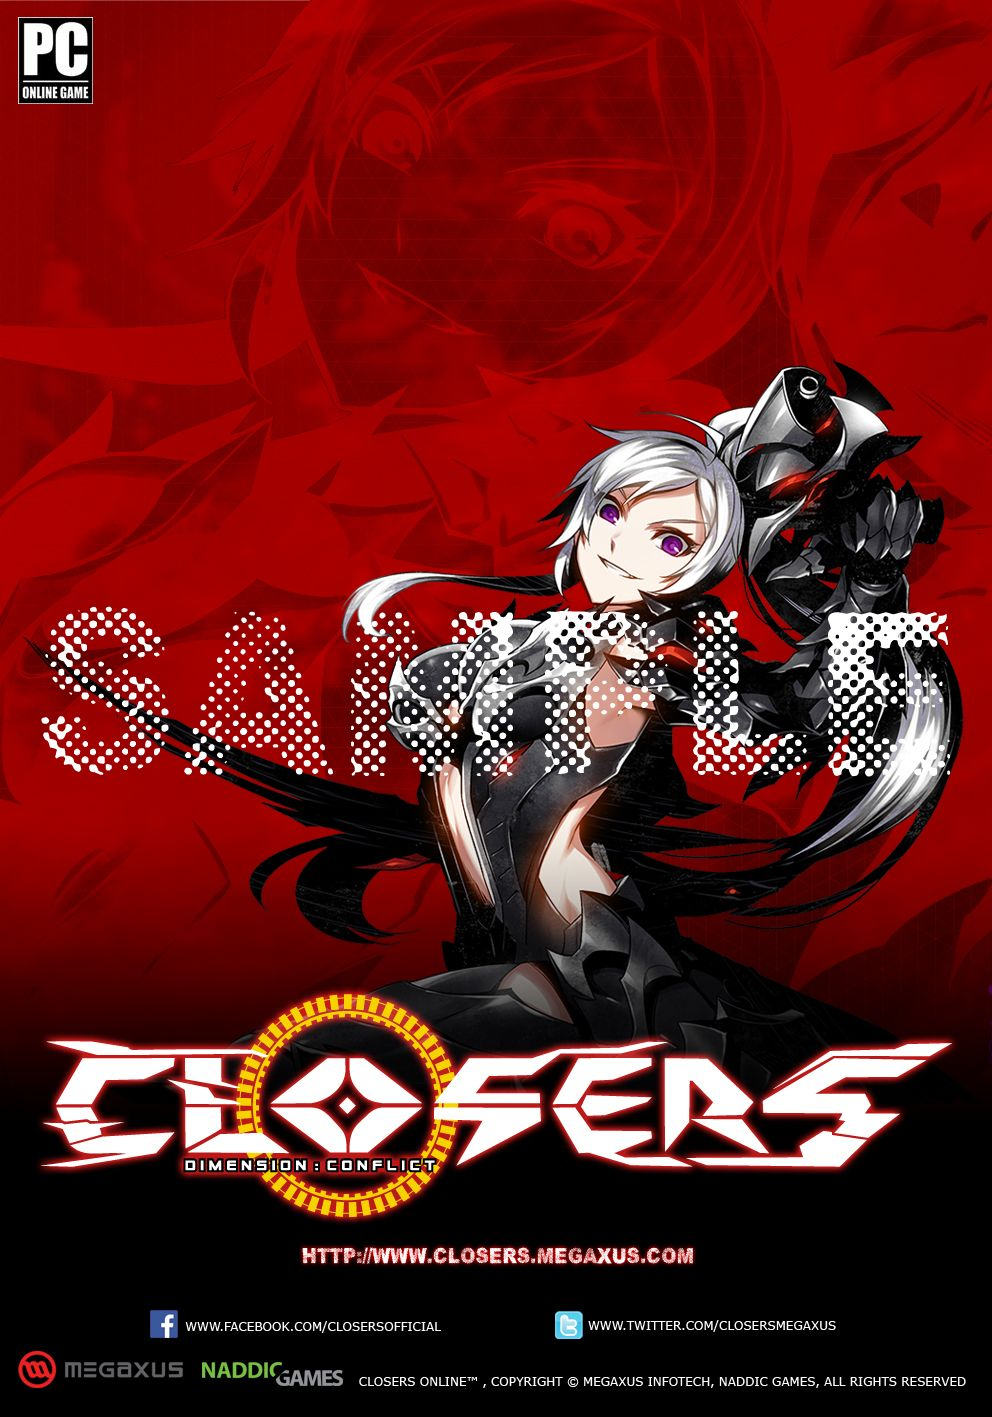 White Conference Normal Landscape Poster Size Character Yuri Normal Sample Indonesia Server Poster Ofness Edition Size X Character Yuri Normal Sample Indonesia Server Poster Splended Normal Poster Siz photos Normal Poster Size